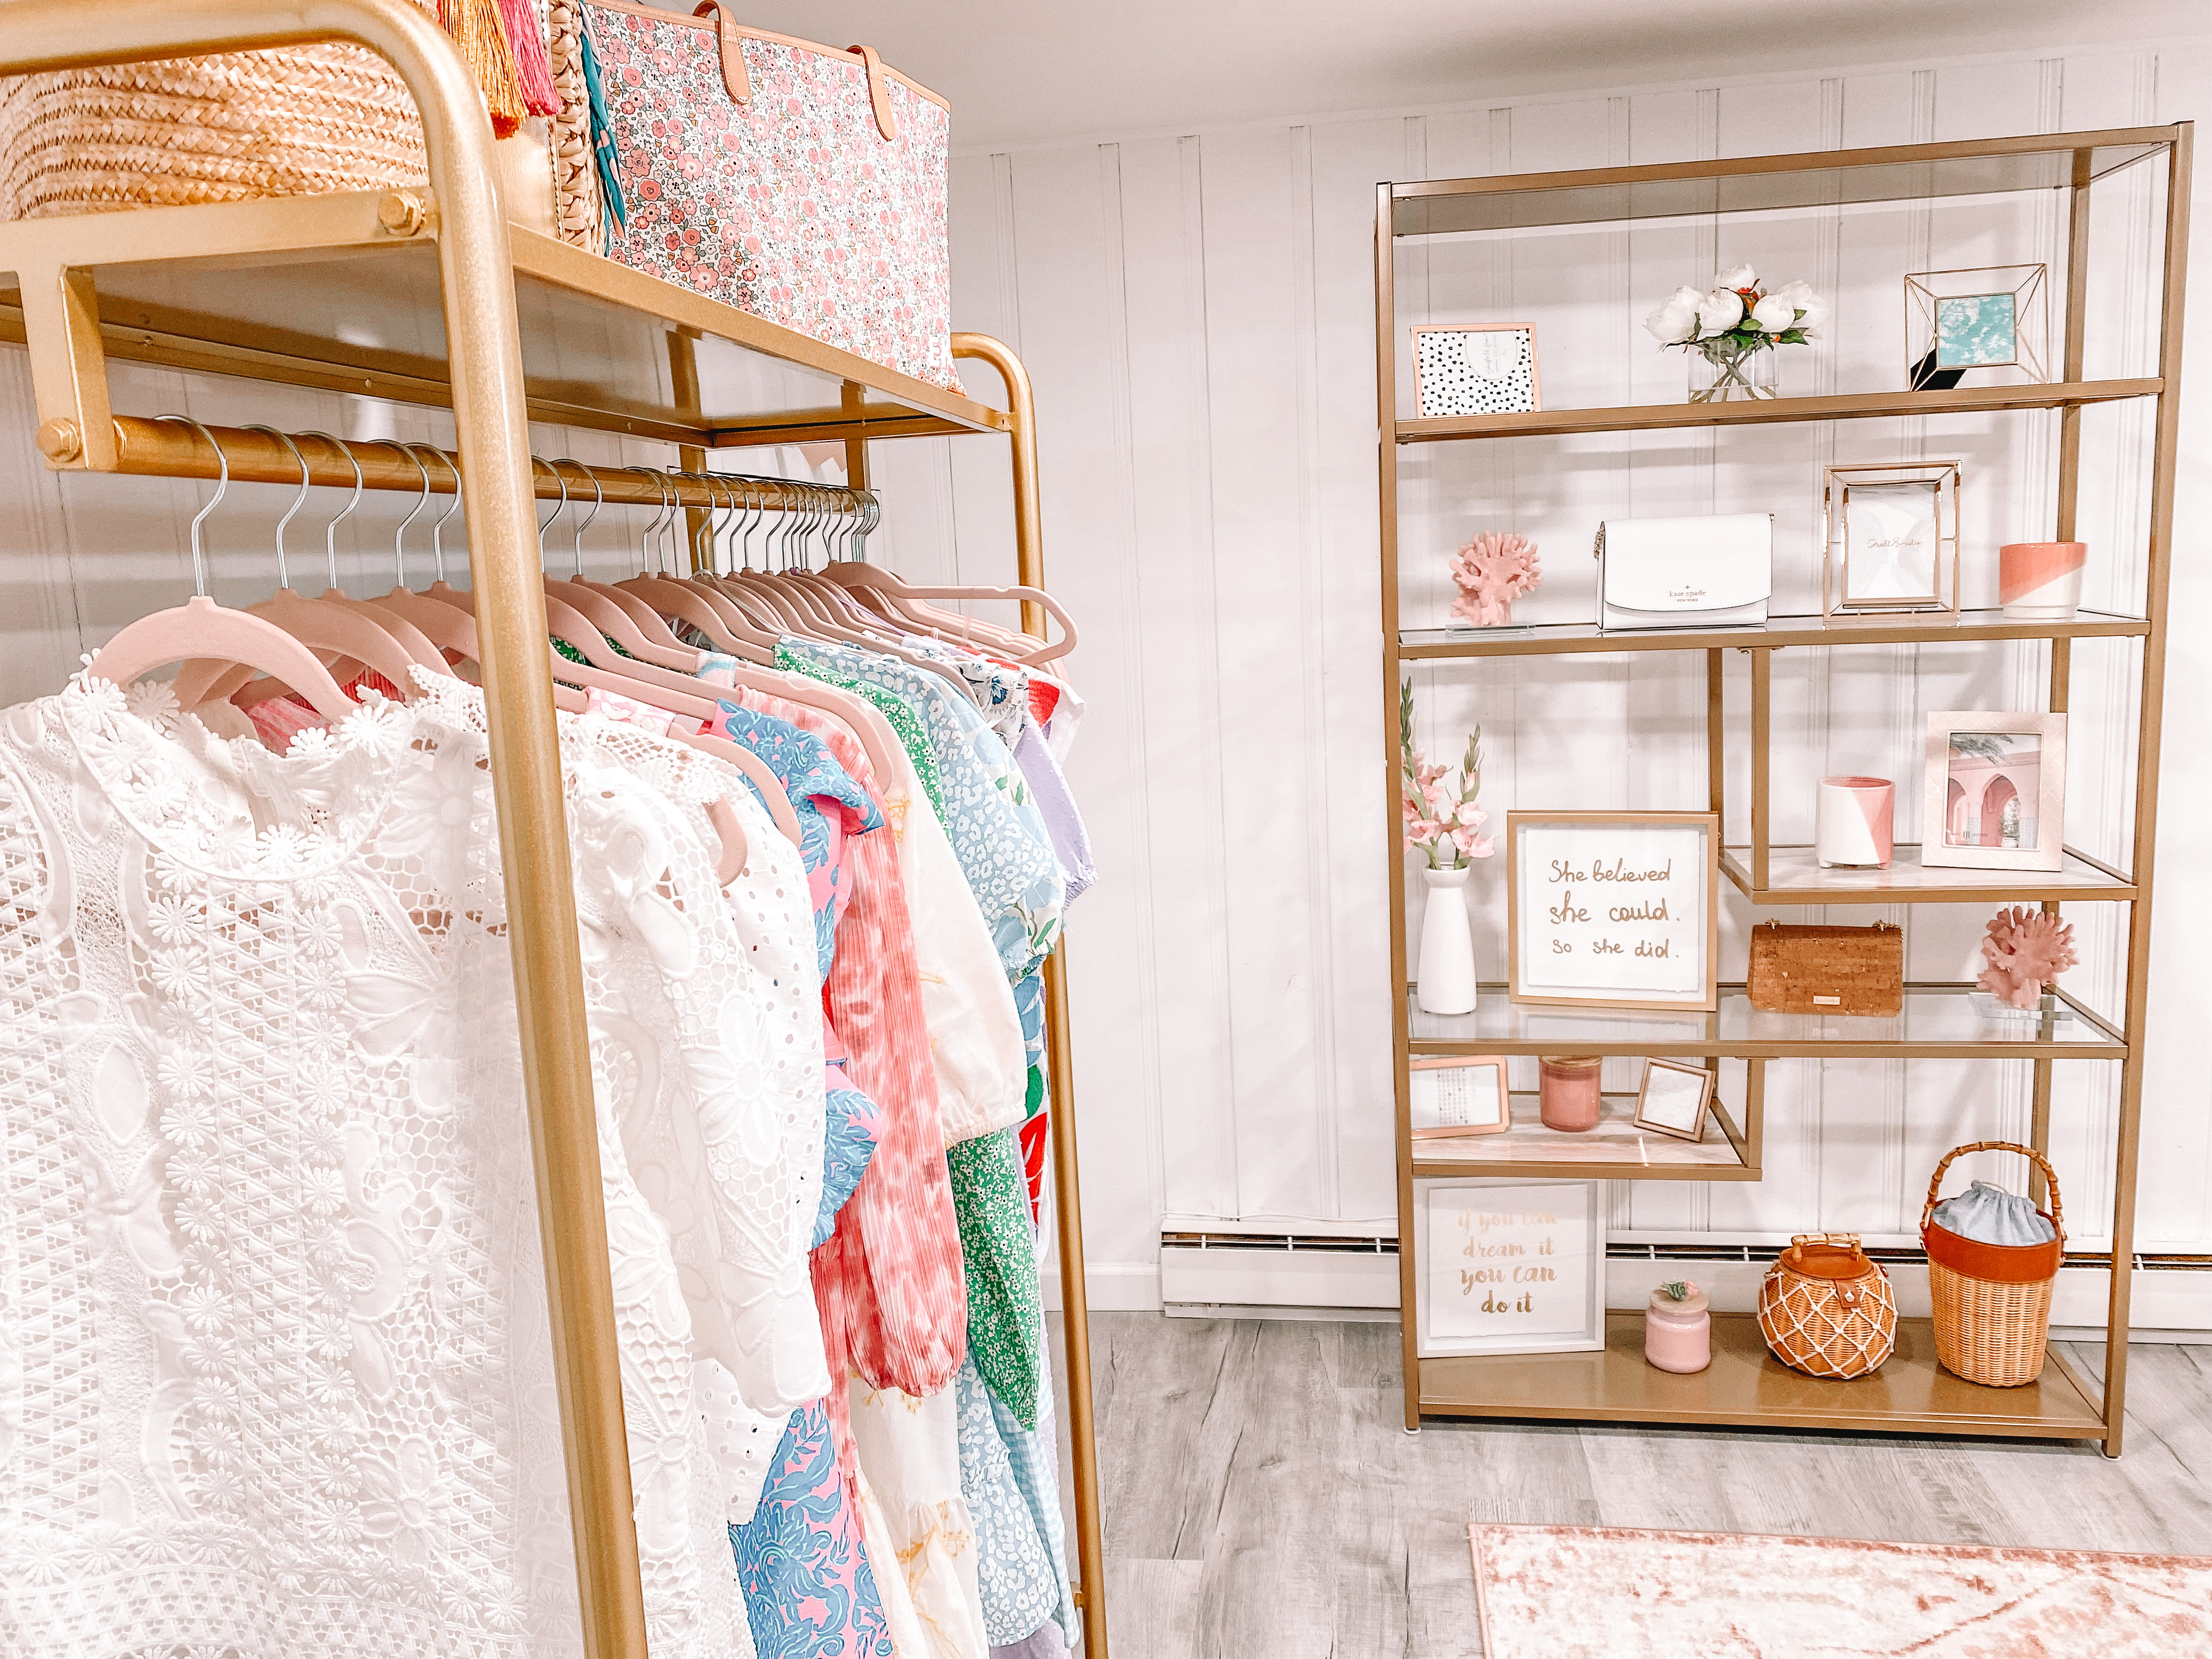 clothing in home closet and office with gold shelves in background